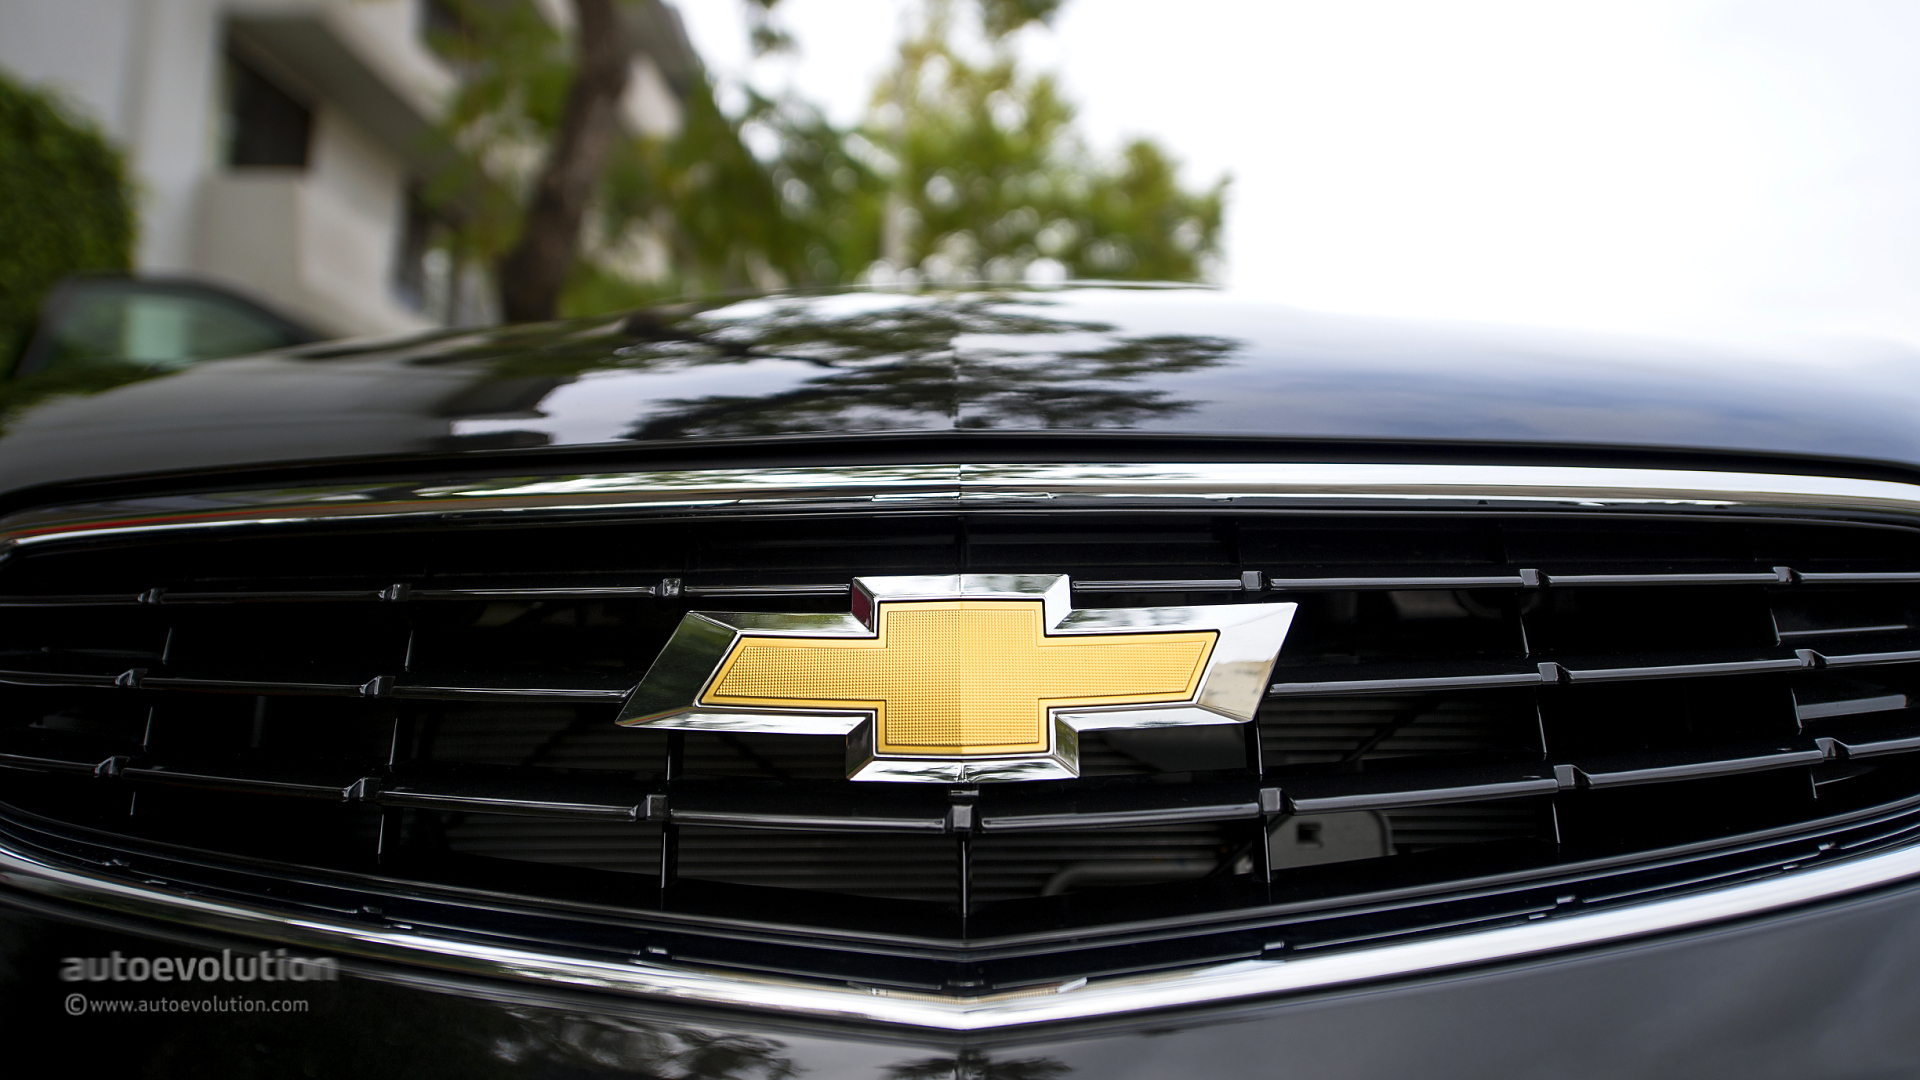 Always Chevrolet CHEVROLET SS Review - autoevolution